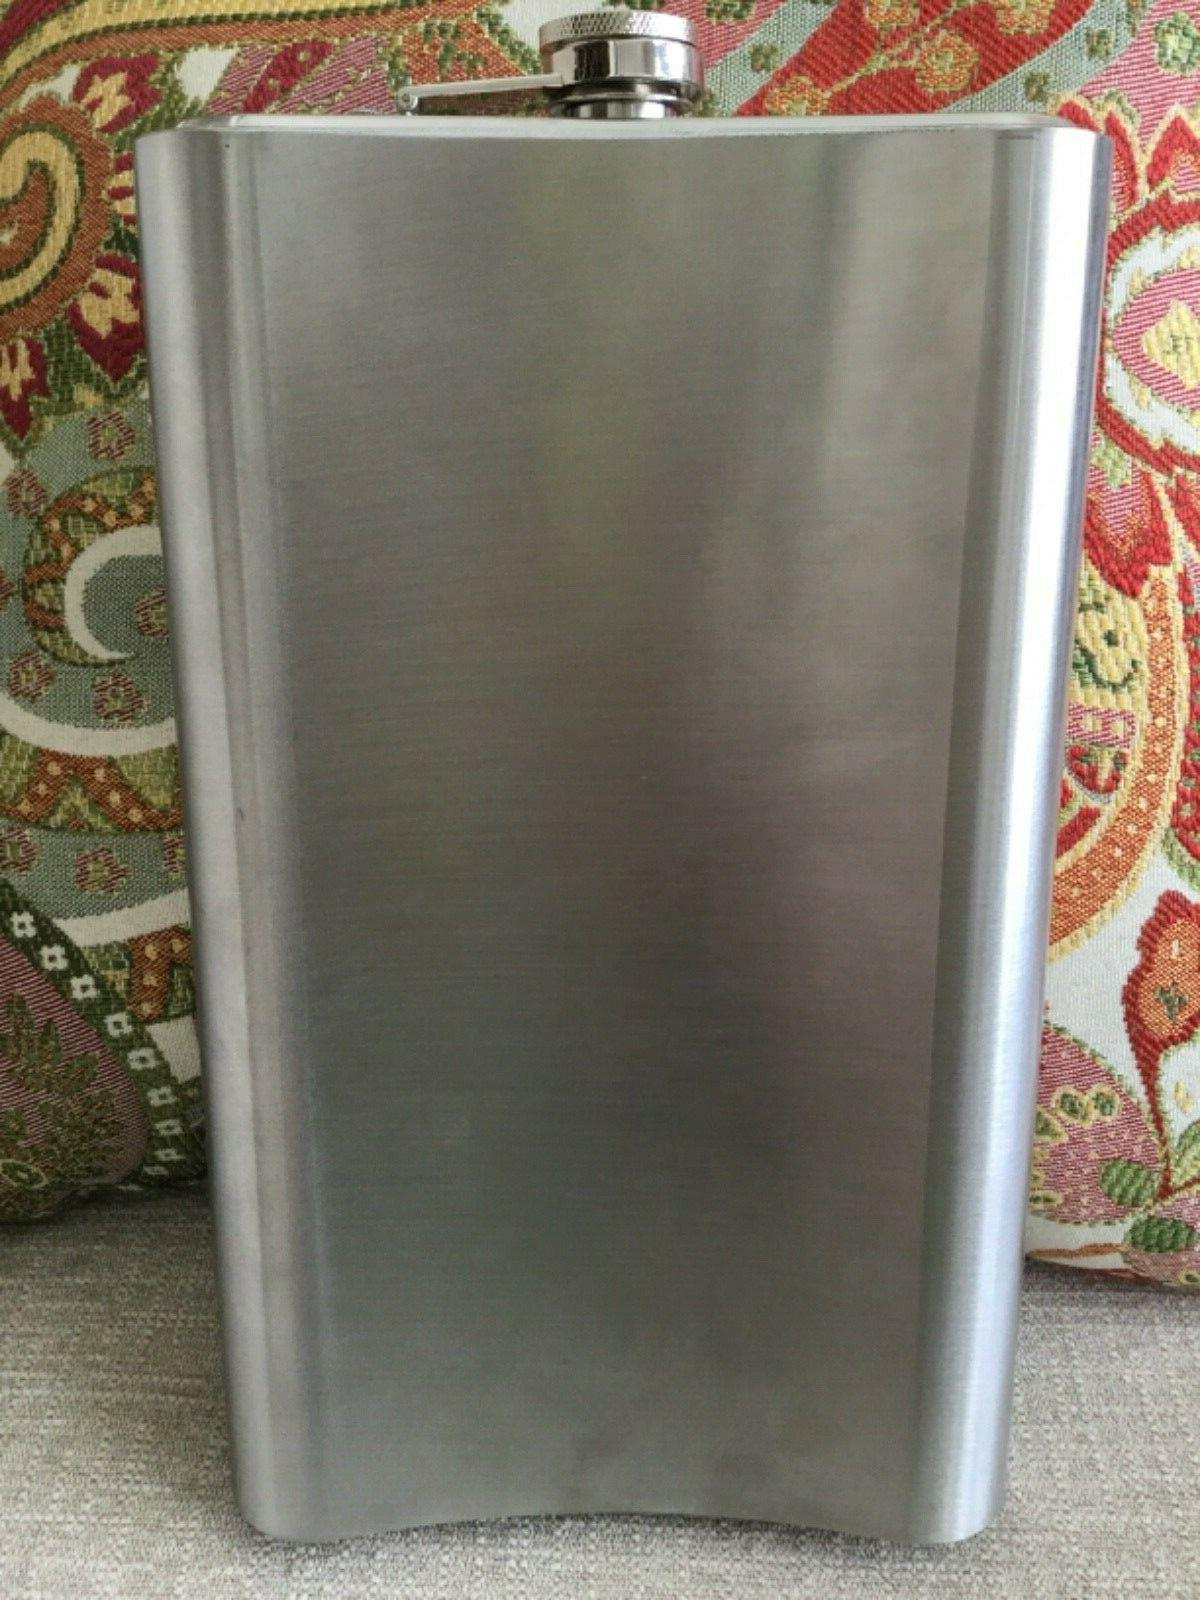 64oz JUMBO Stainless Attached Cap Liquor Size